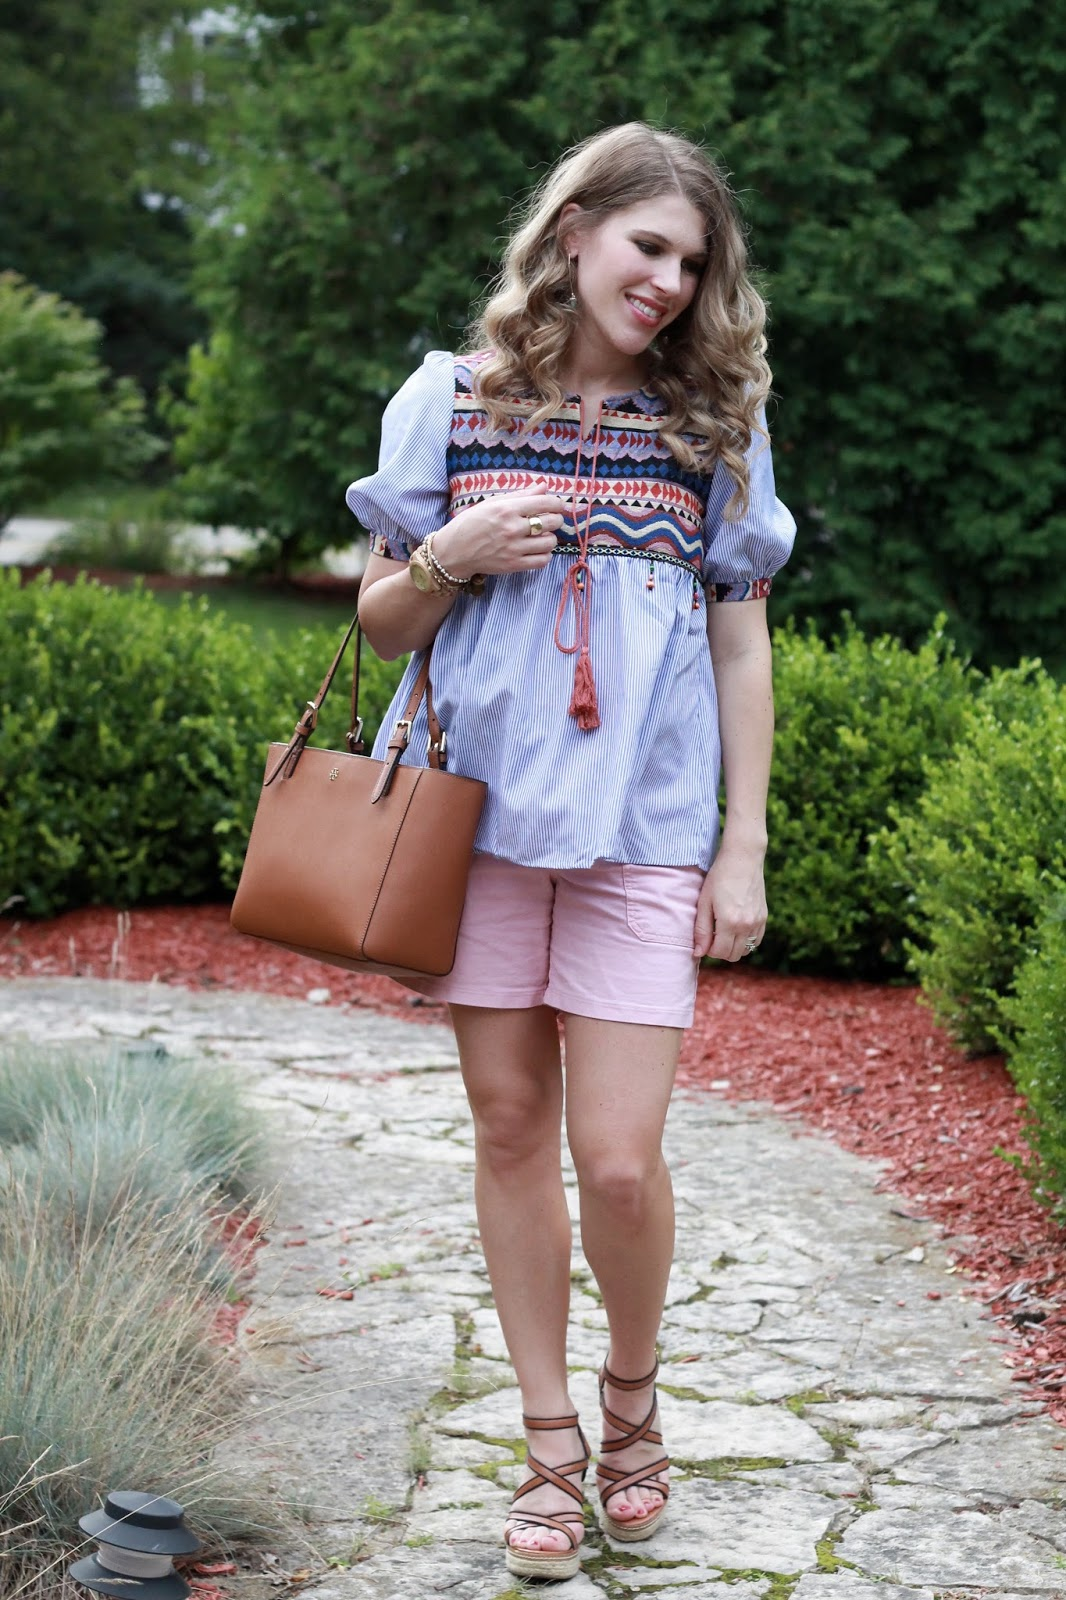 SheIn embroidered top, pink shorts, wedges, Tory Burch tote, second trimester summer maternity outfit